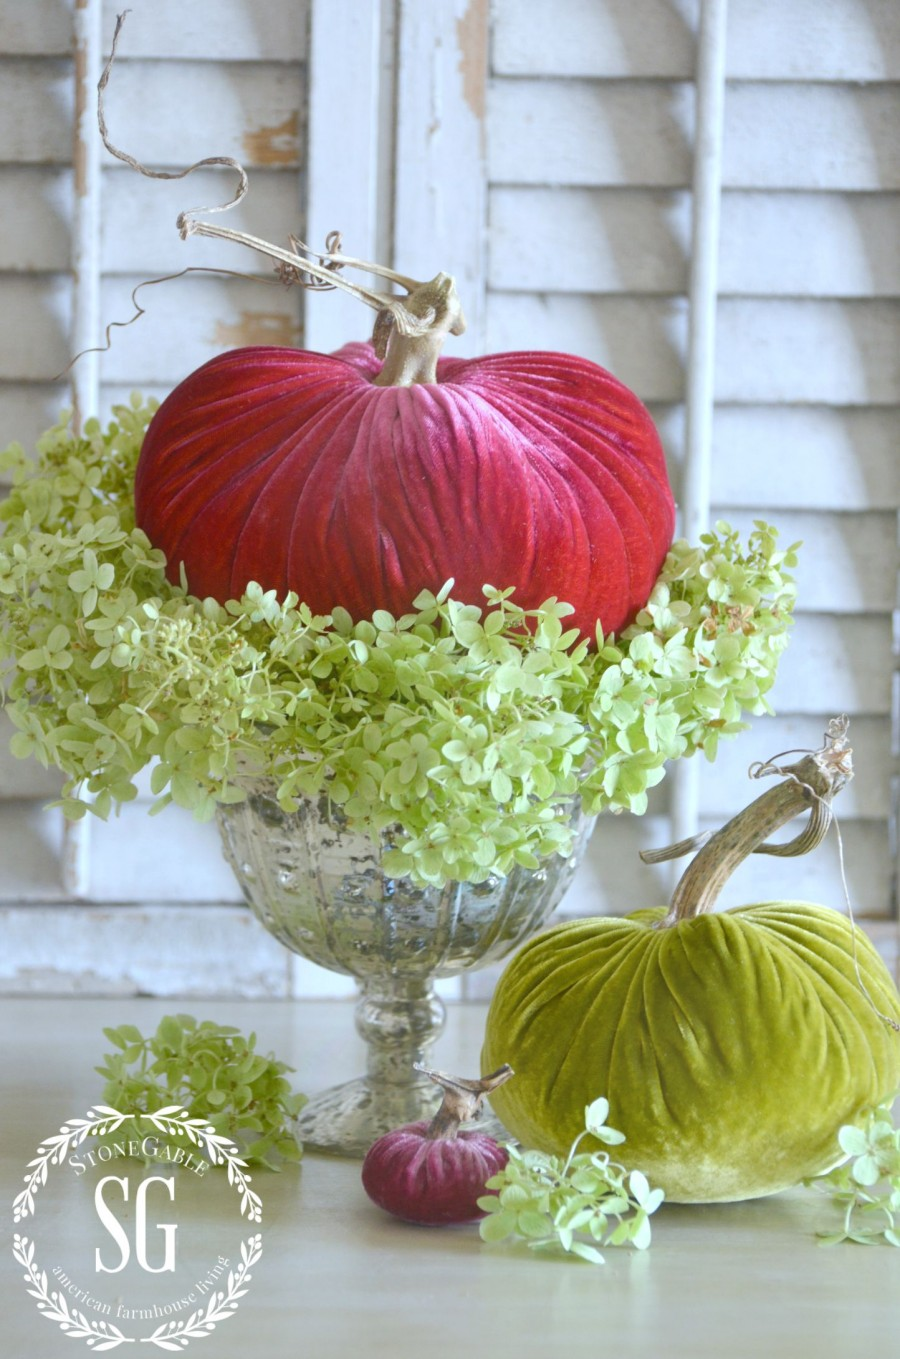 5 BEAUTIFUL WAYS TO STYLE PUMPKINS-Let